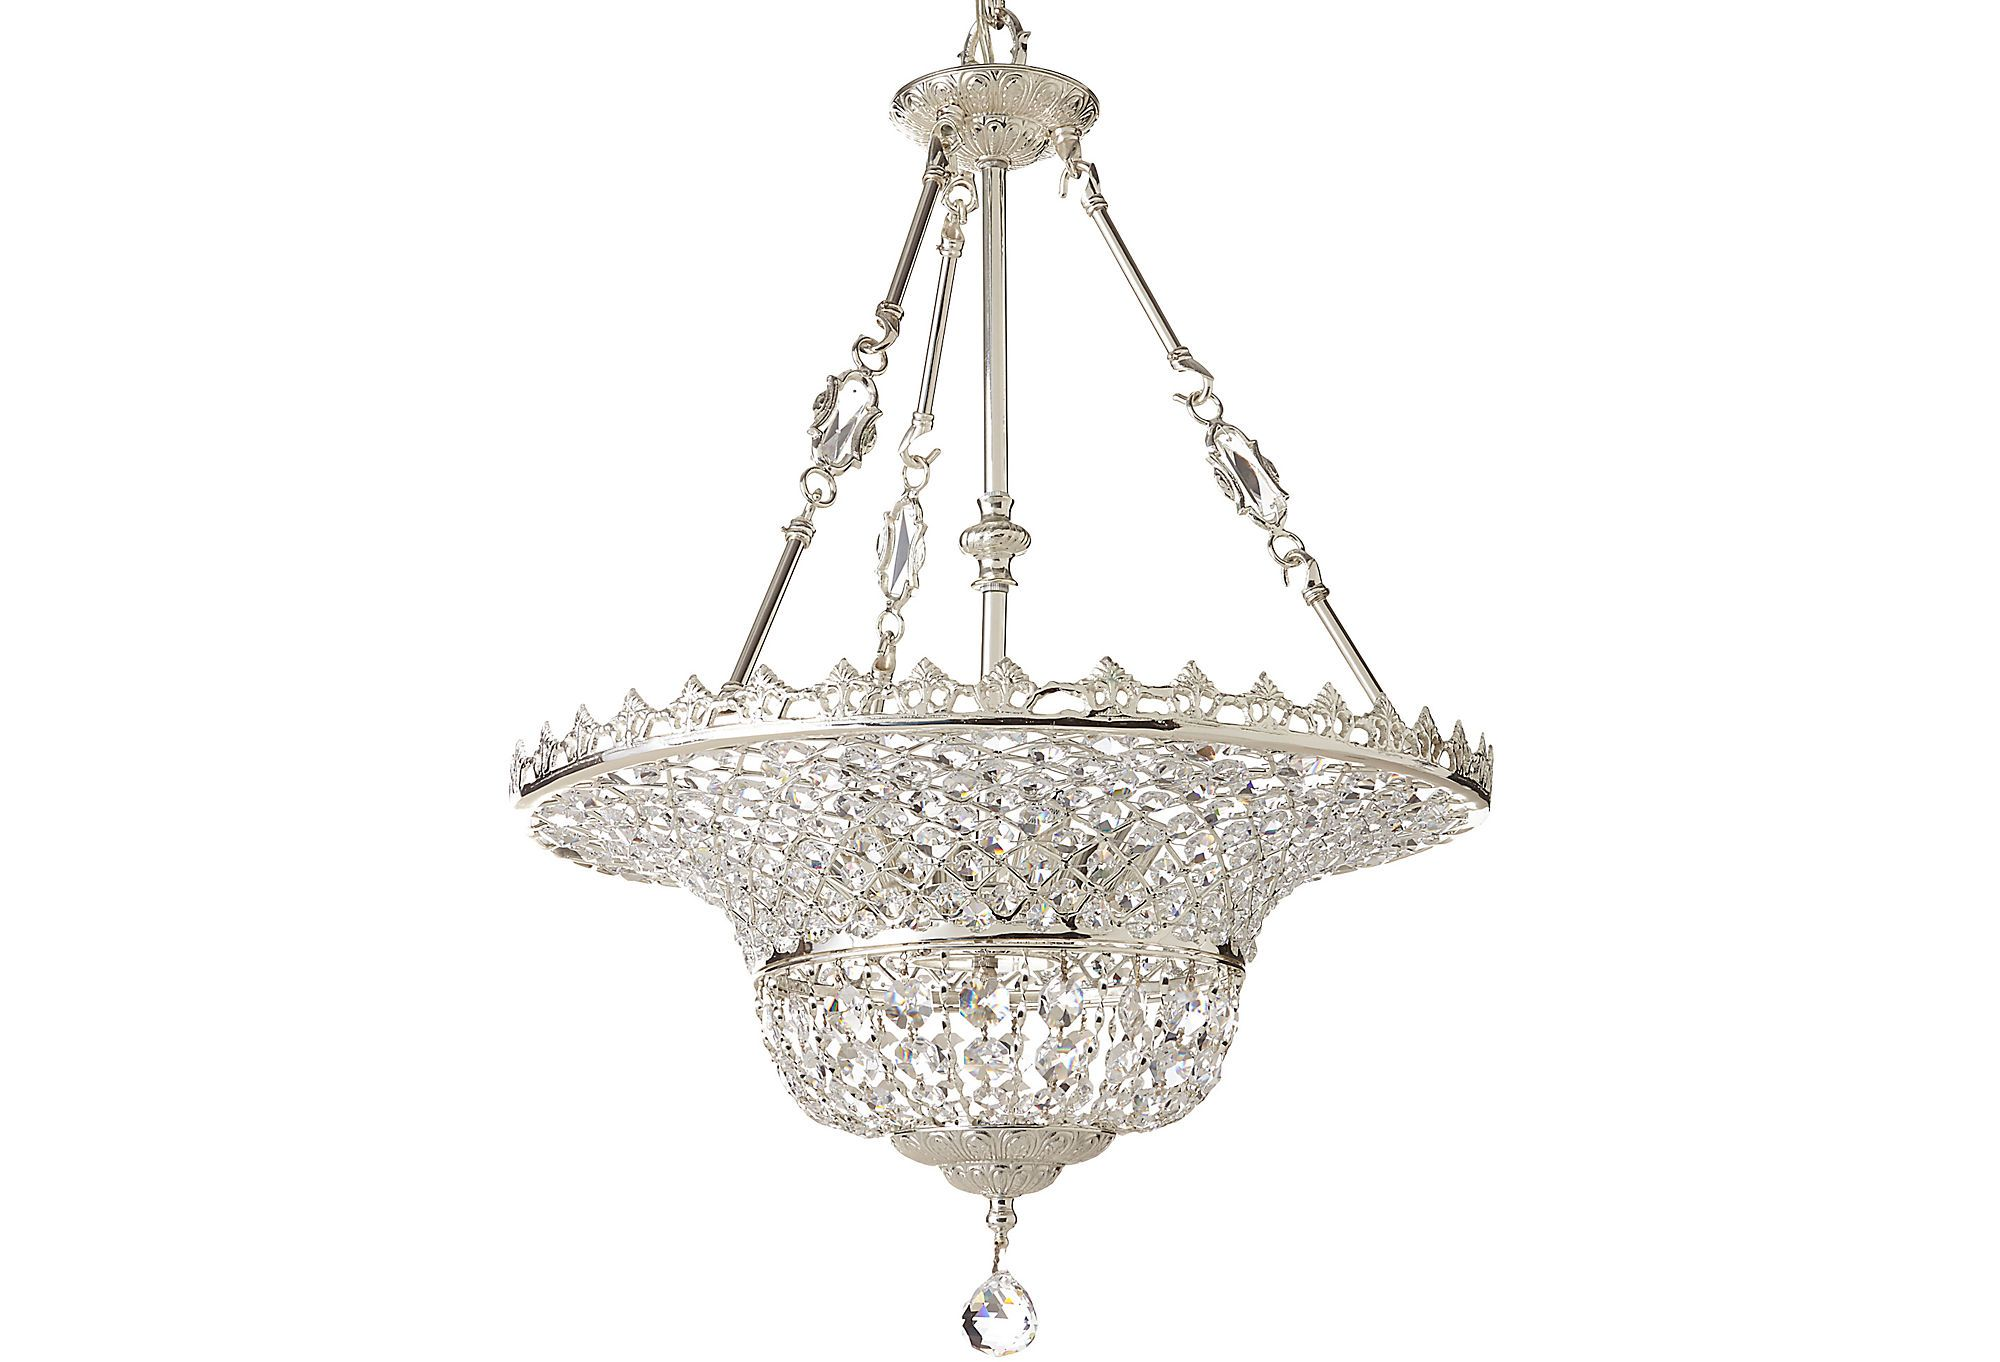 One kings lane dwell with dignity dale tiffany kreigal one kings lane dwell with dignity dale tiffany kreigal chandelier arubaitofo Images